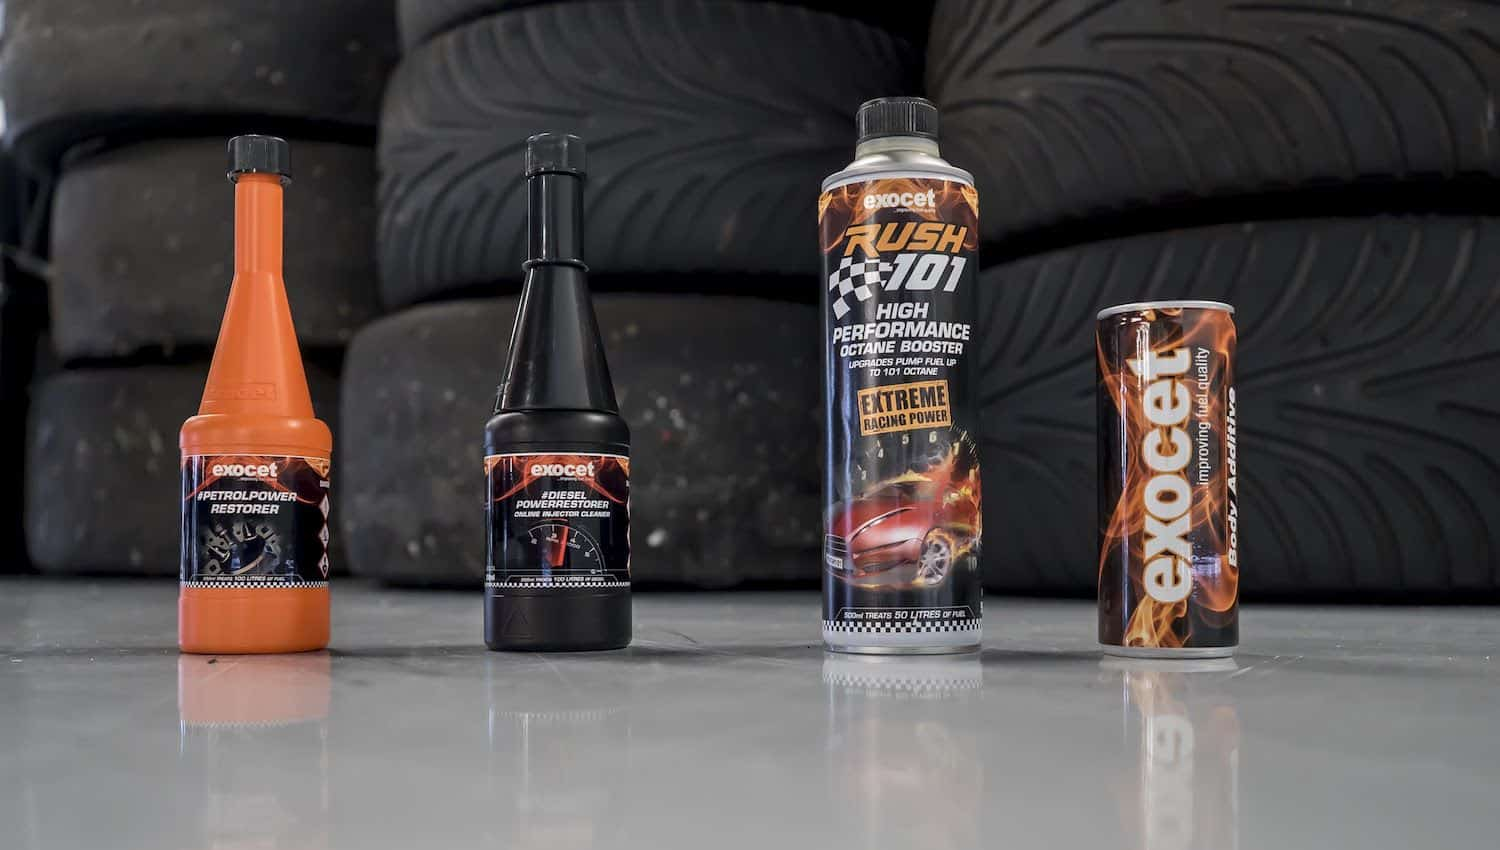 Some of the products in Exocet's automotive range